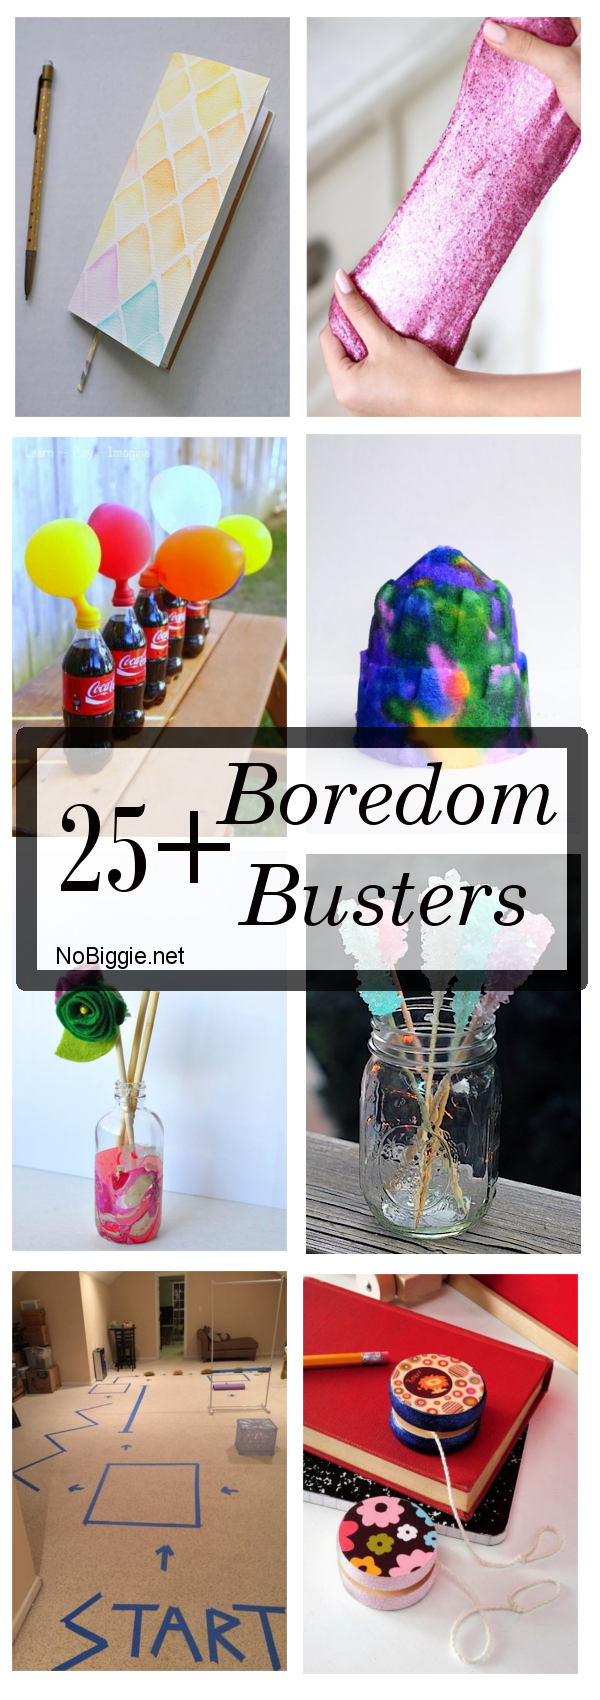 25 Boredom Busters!! Nip those i'm bored cries with these great boredom busters for your kiddos! #boredombusters #activitesforkids #summeractivities #rainydayfun #bored